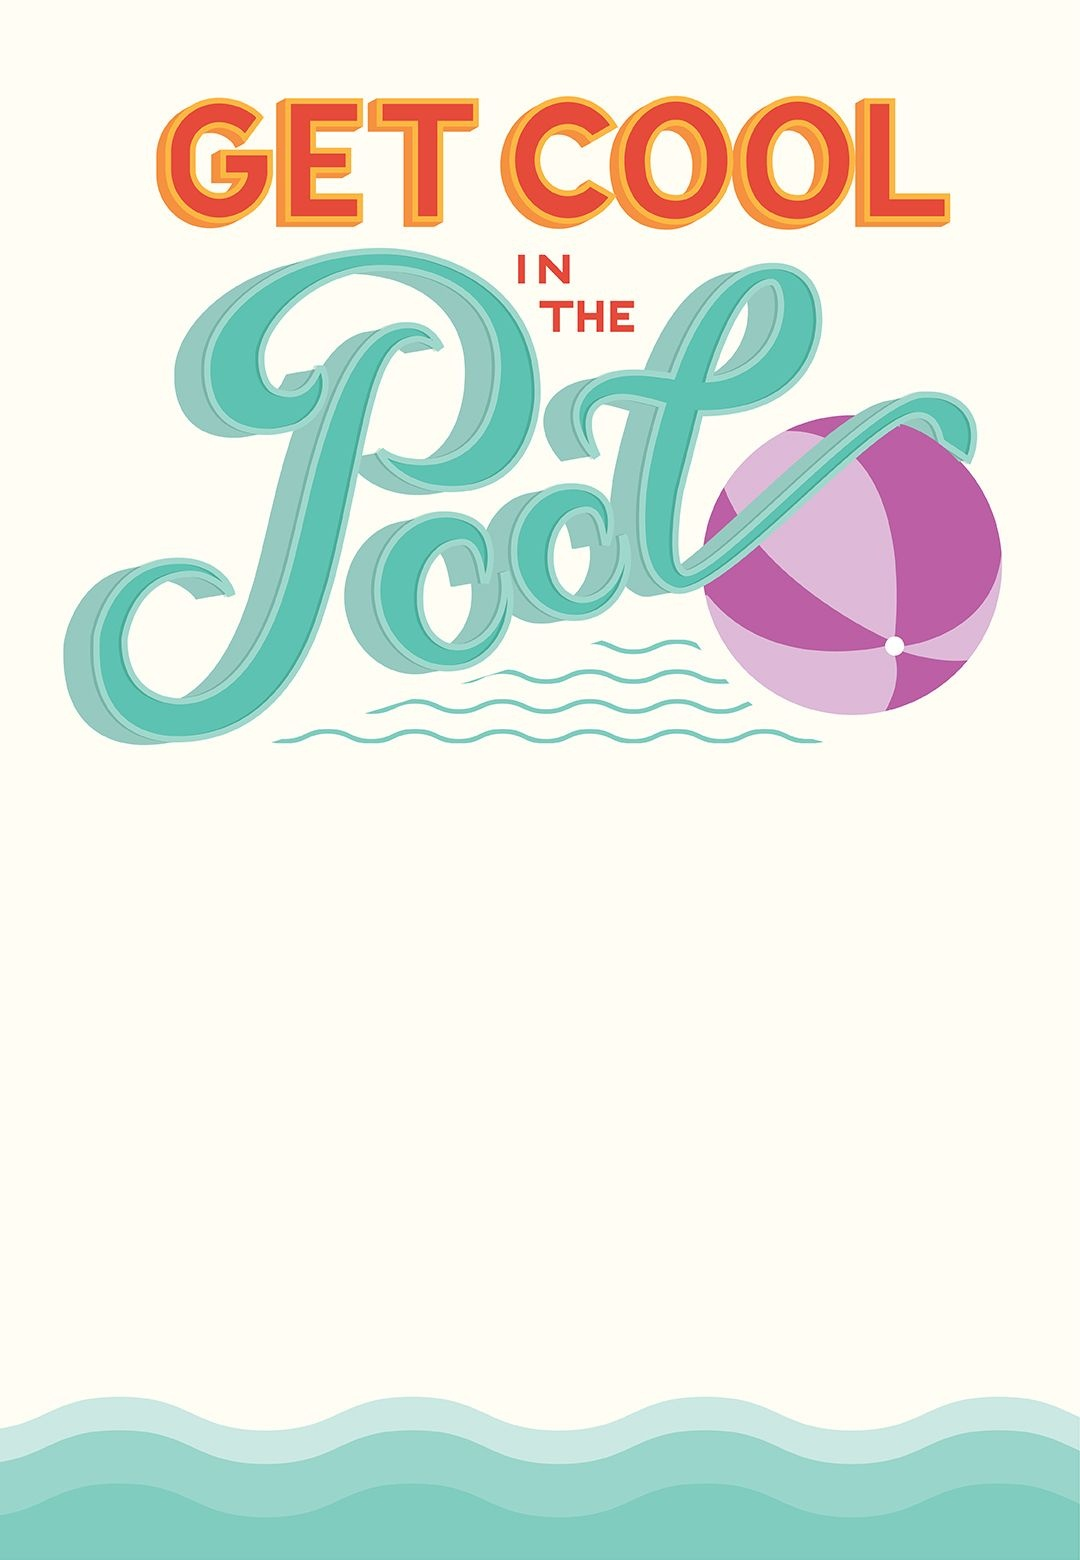 Pool Party - Free Printable Party Invitation Template | Greetings - Free Printable Water Park Birthday Invitations